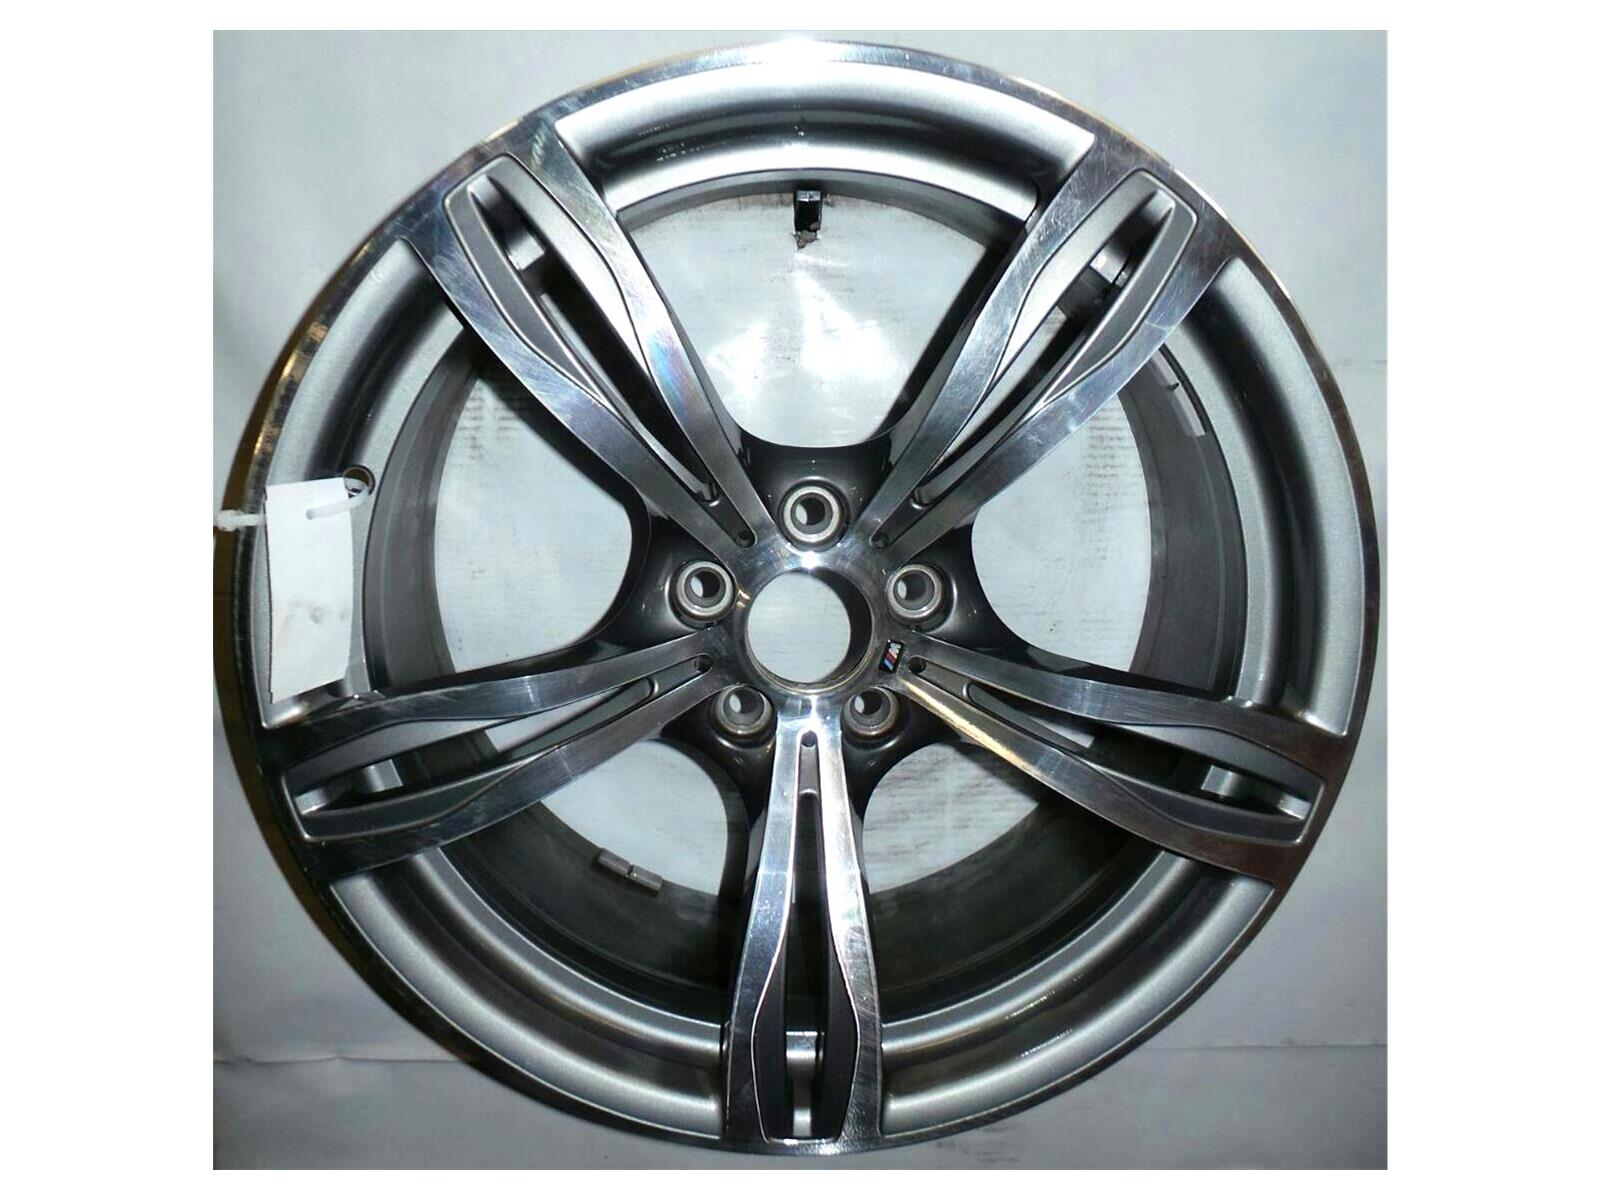 a oem img rim bmw classifieds private net forums wheels style styles member fs